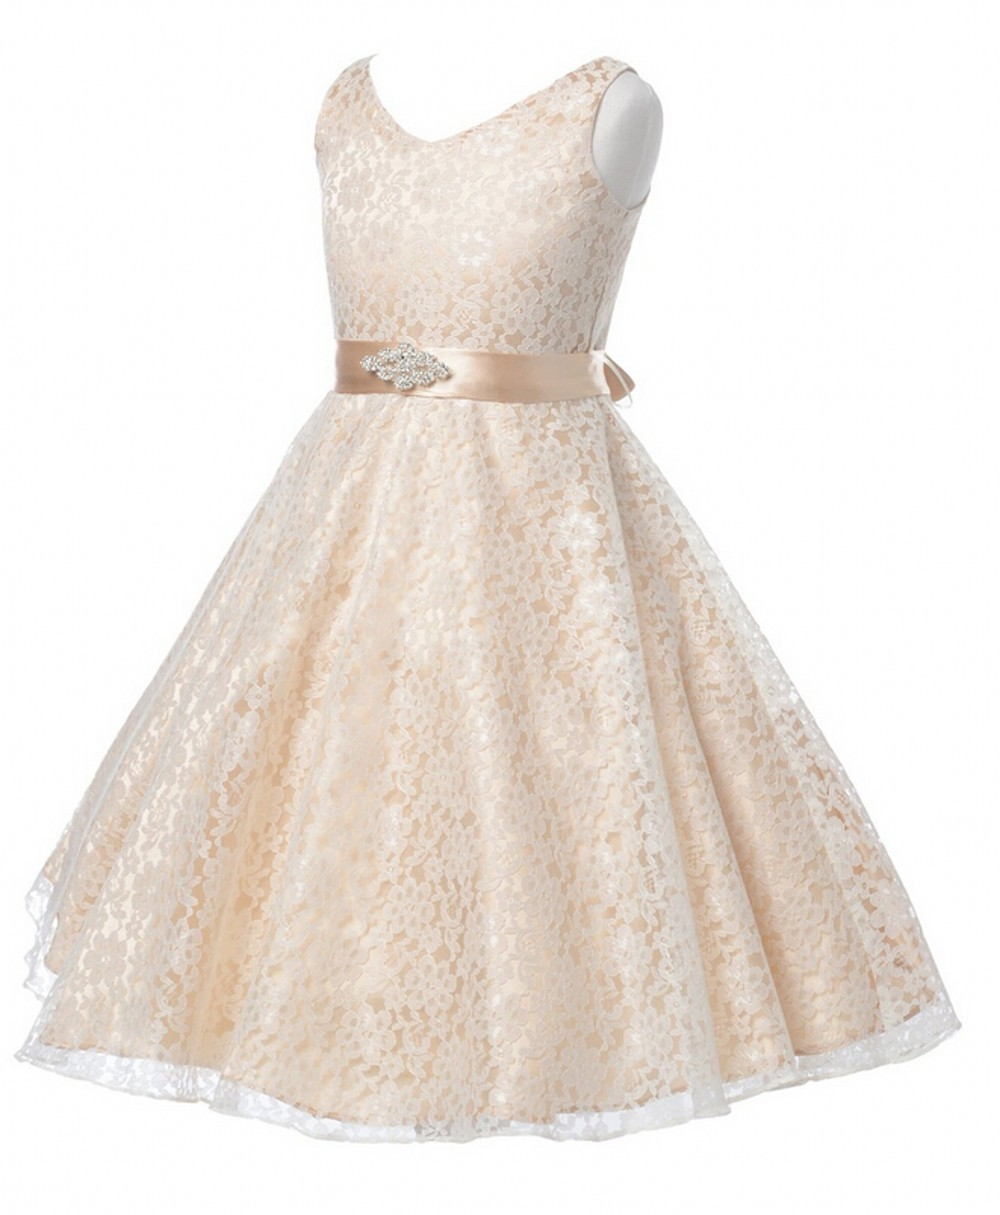 1c9cd91a6 Cheap Youth Girls Dresses